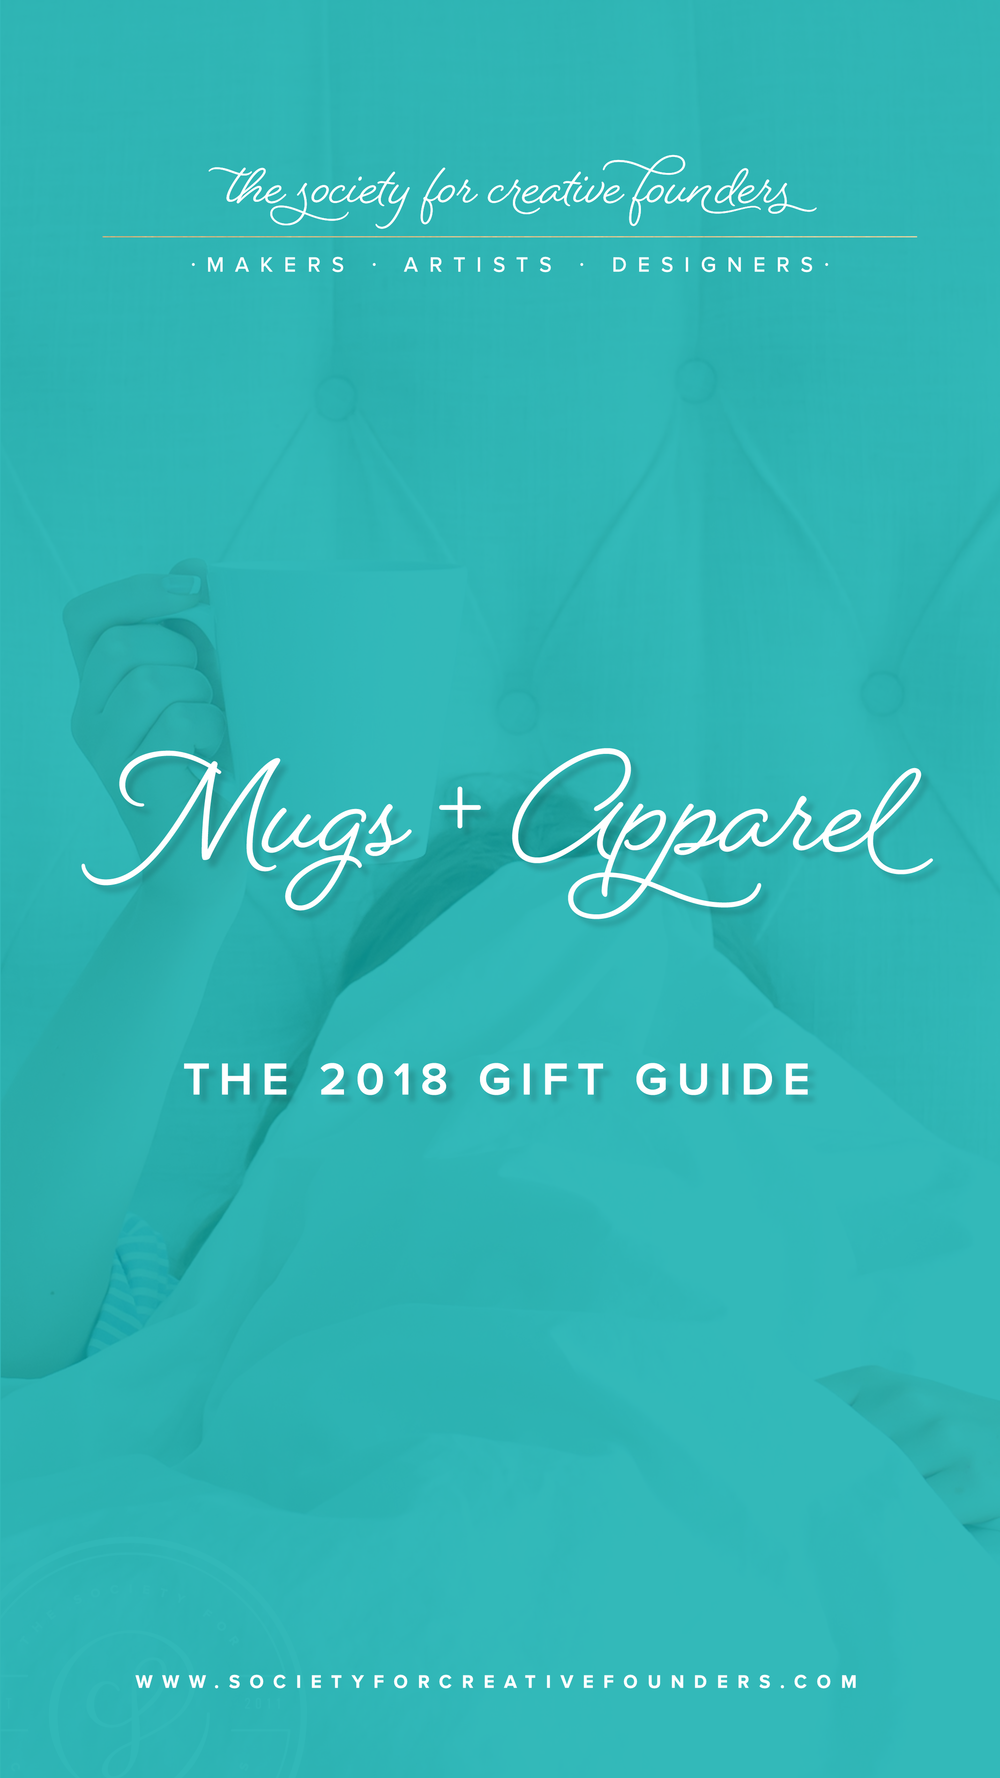 Mugs and Apparel - Creative Founders 2018 Gift Guide